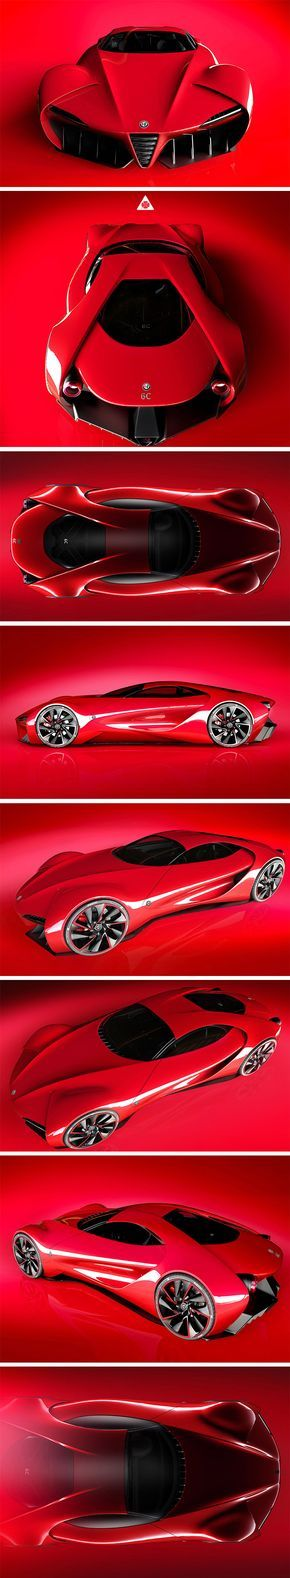 For all its aggressiveness, the Alfa Romeo Disco Volante concept by Alex Imnadze also has a delicate femininity to it. Makes perfect sense considering its flowing form was inspired by the natural curves of a woman's body!